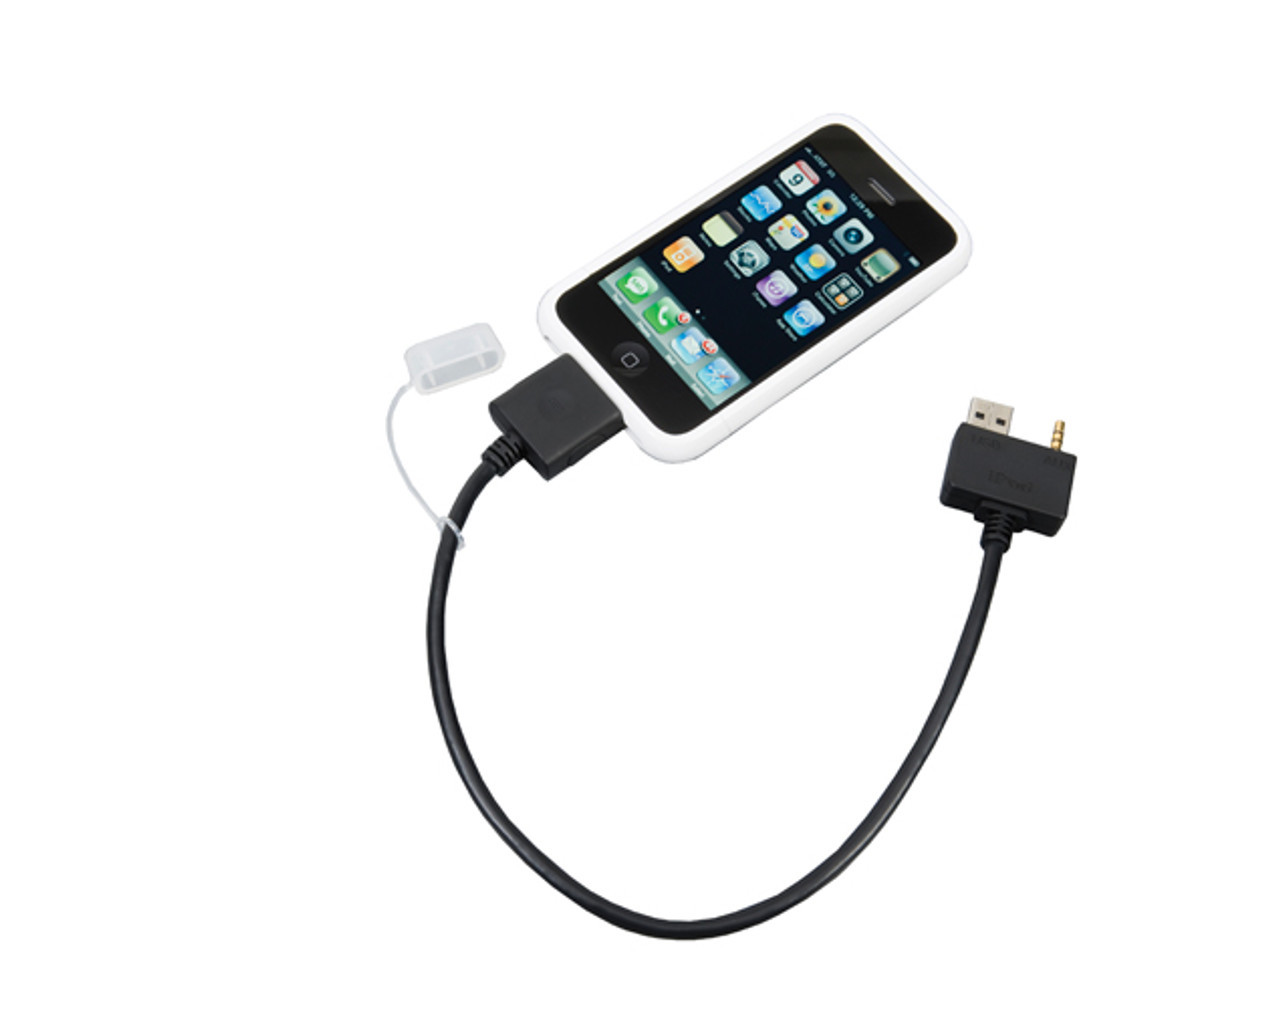 iPod Cable Aux In USB for 2009 2010 2011 2012 Hyundai Sonata Equus Veracruz